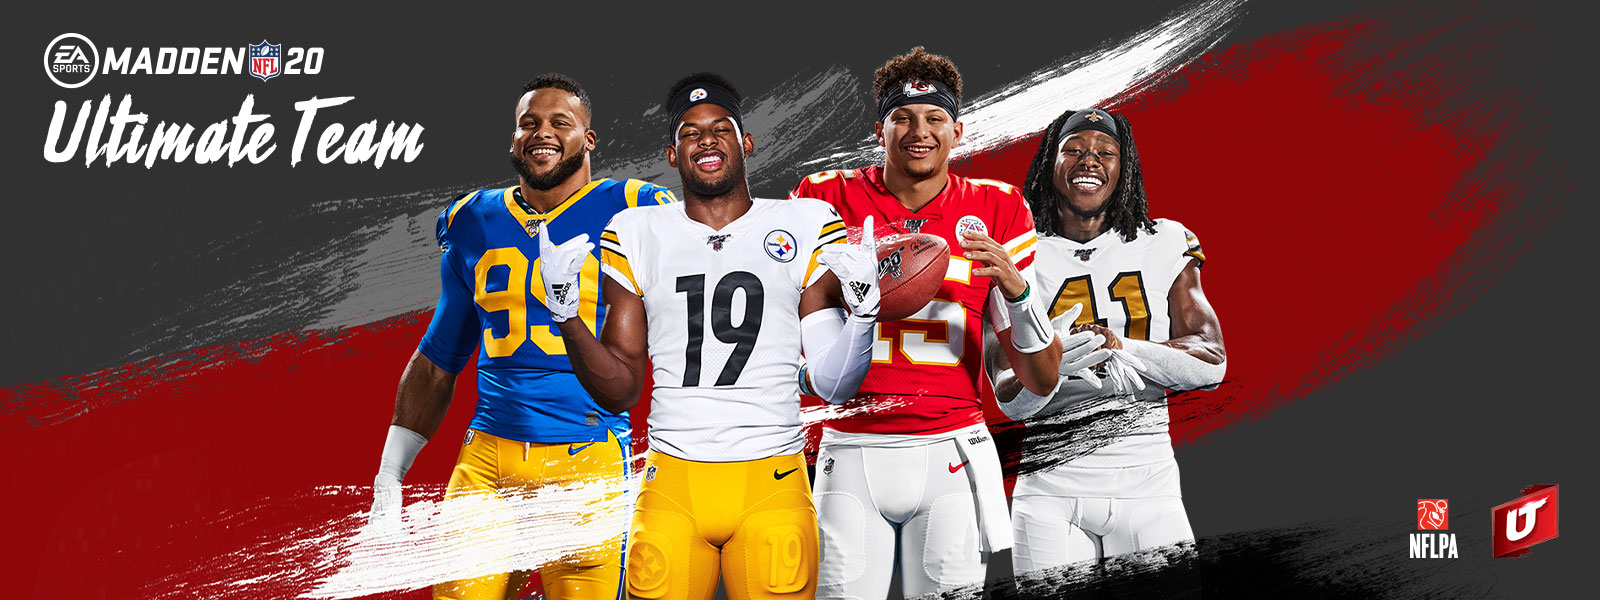 EA Sports, Madden NFL 20, Ultimate Team, logotipo de Ultimate Team, logotipo de la NFLPA, cuatro jugadores de fútbol posando